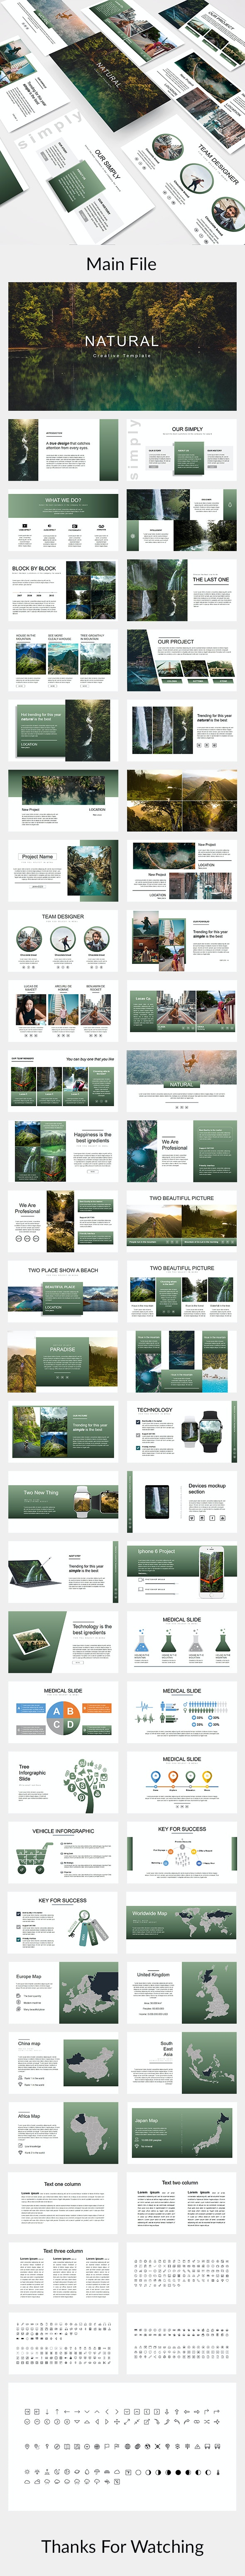 Natural - Creative Powerpoint Template - Creative PowerPoint Templates